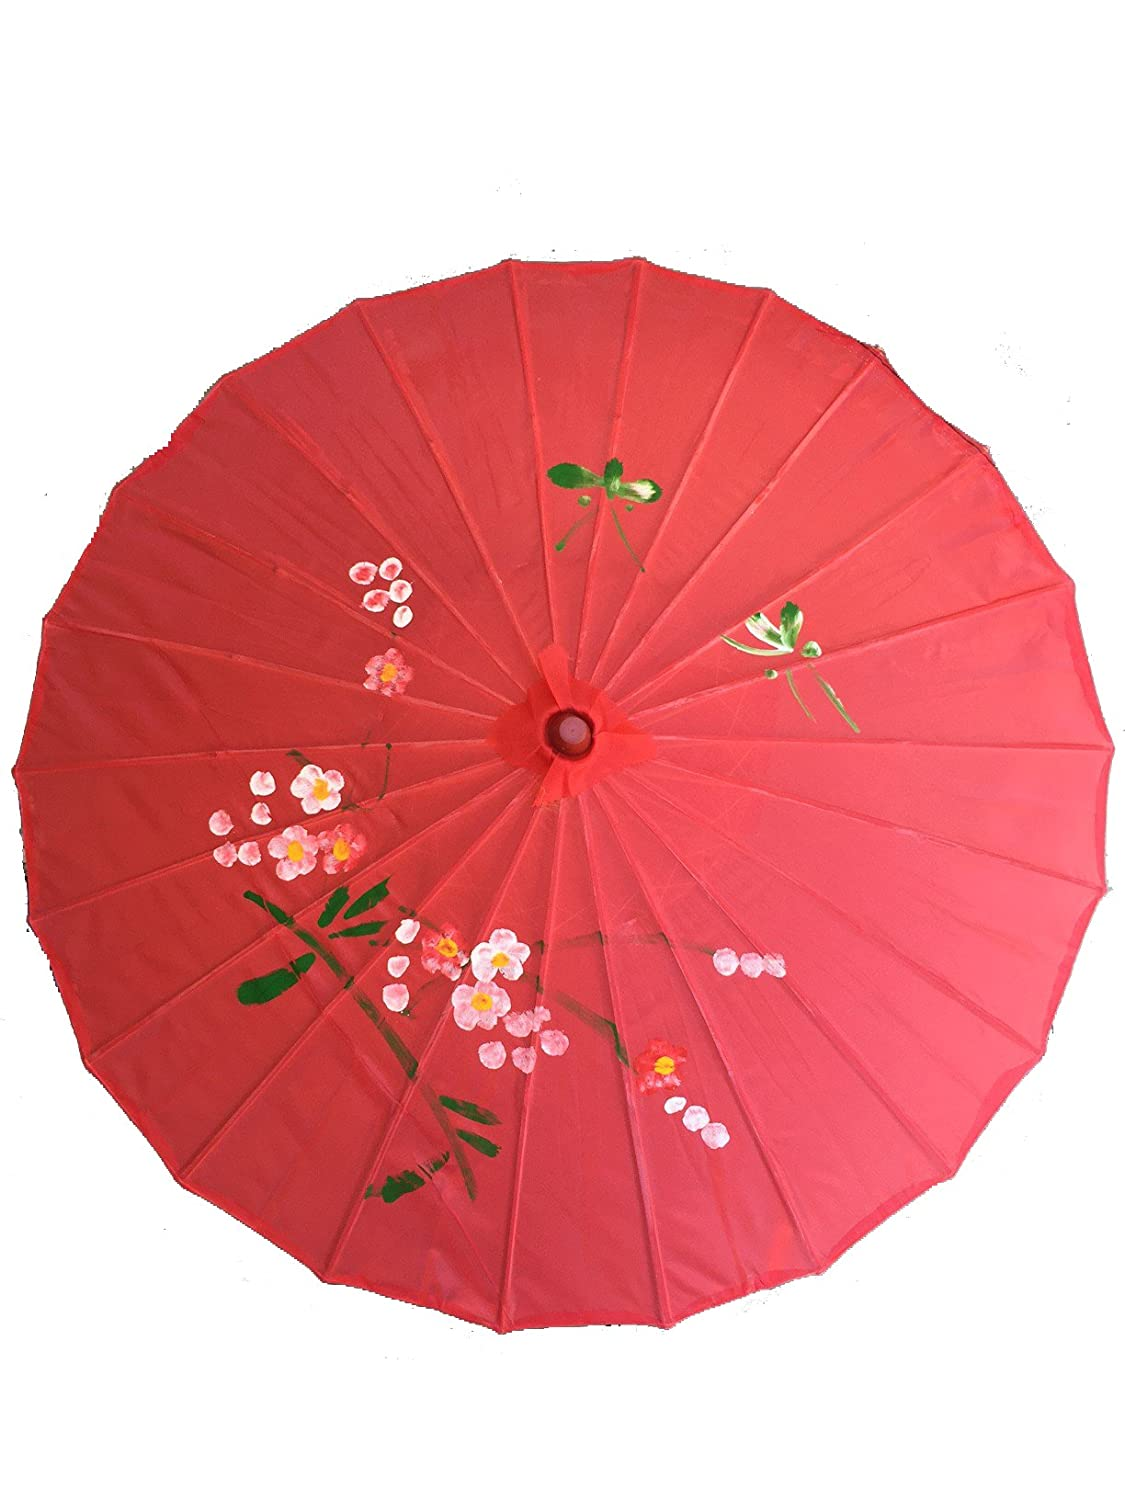 32 Chinese Japanese Red Fabric Umbrella Parasol USA Seller